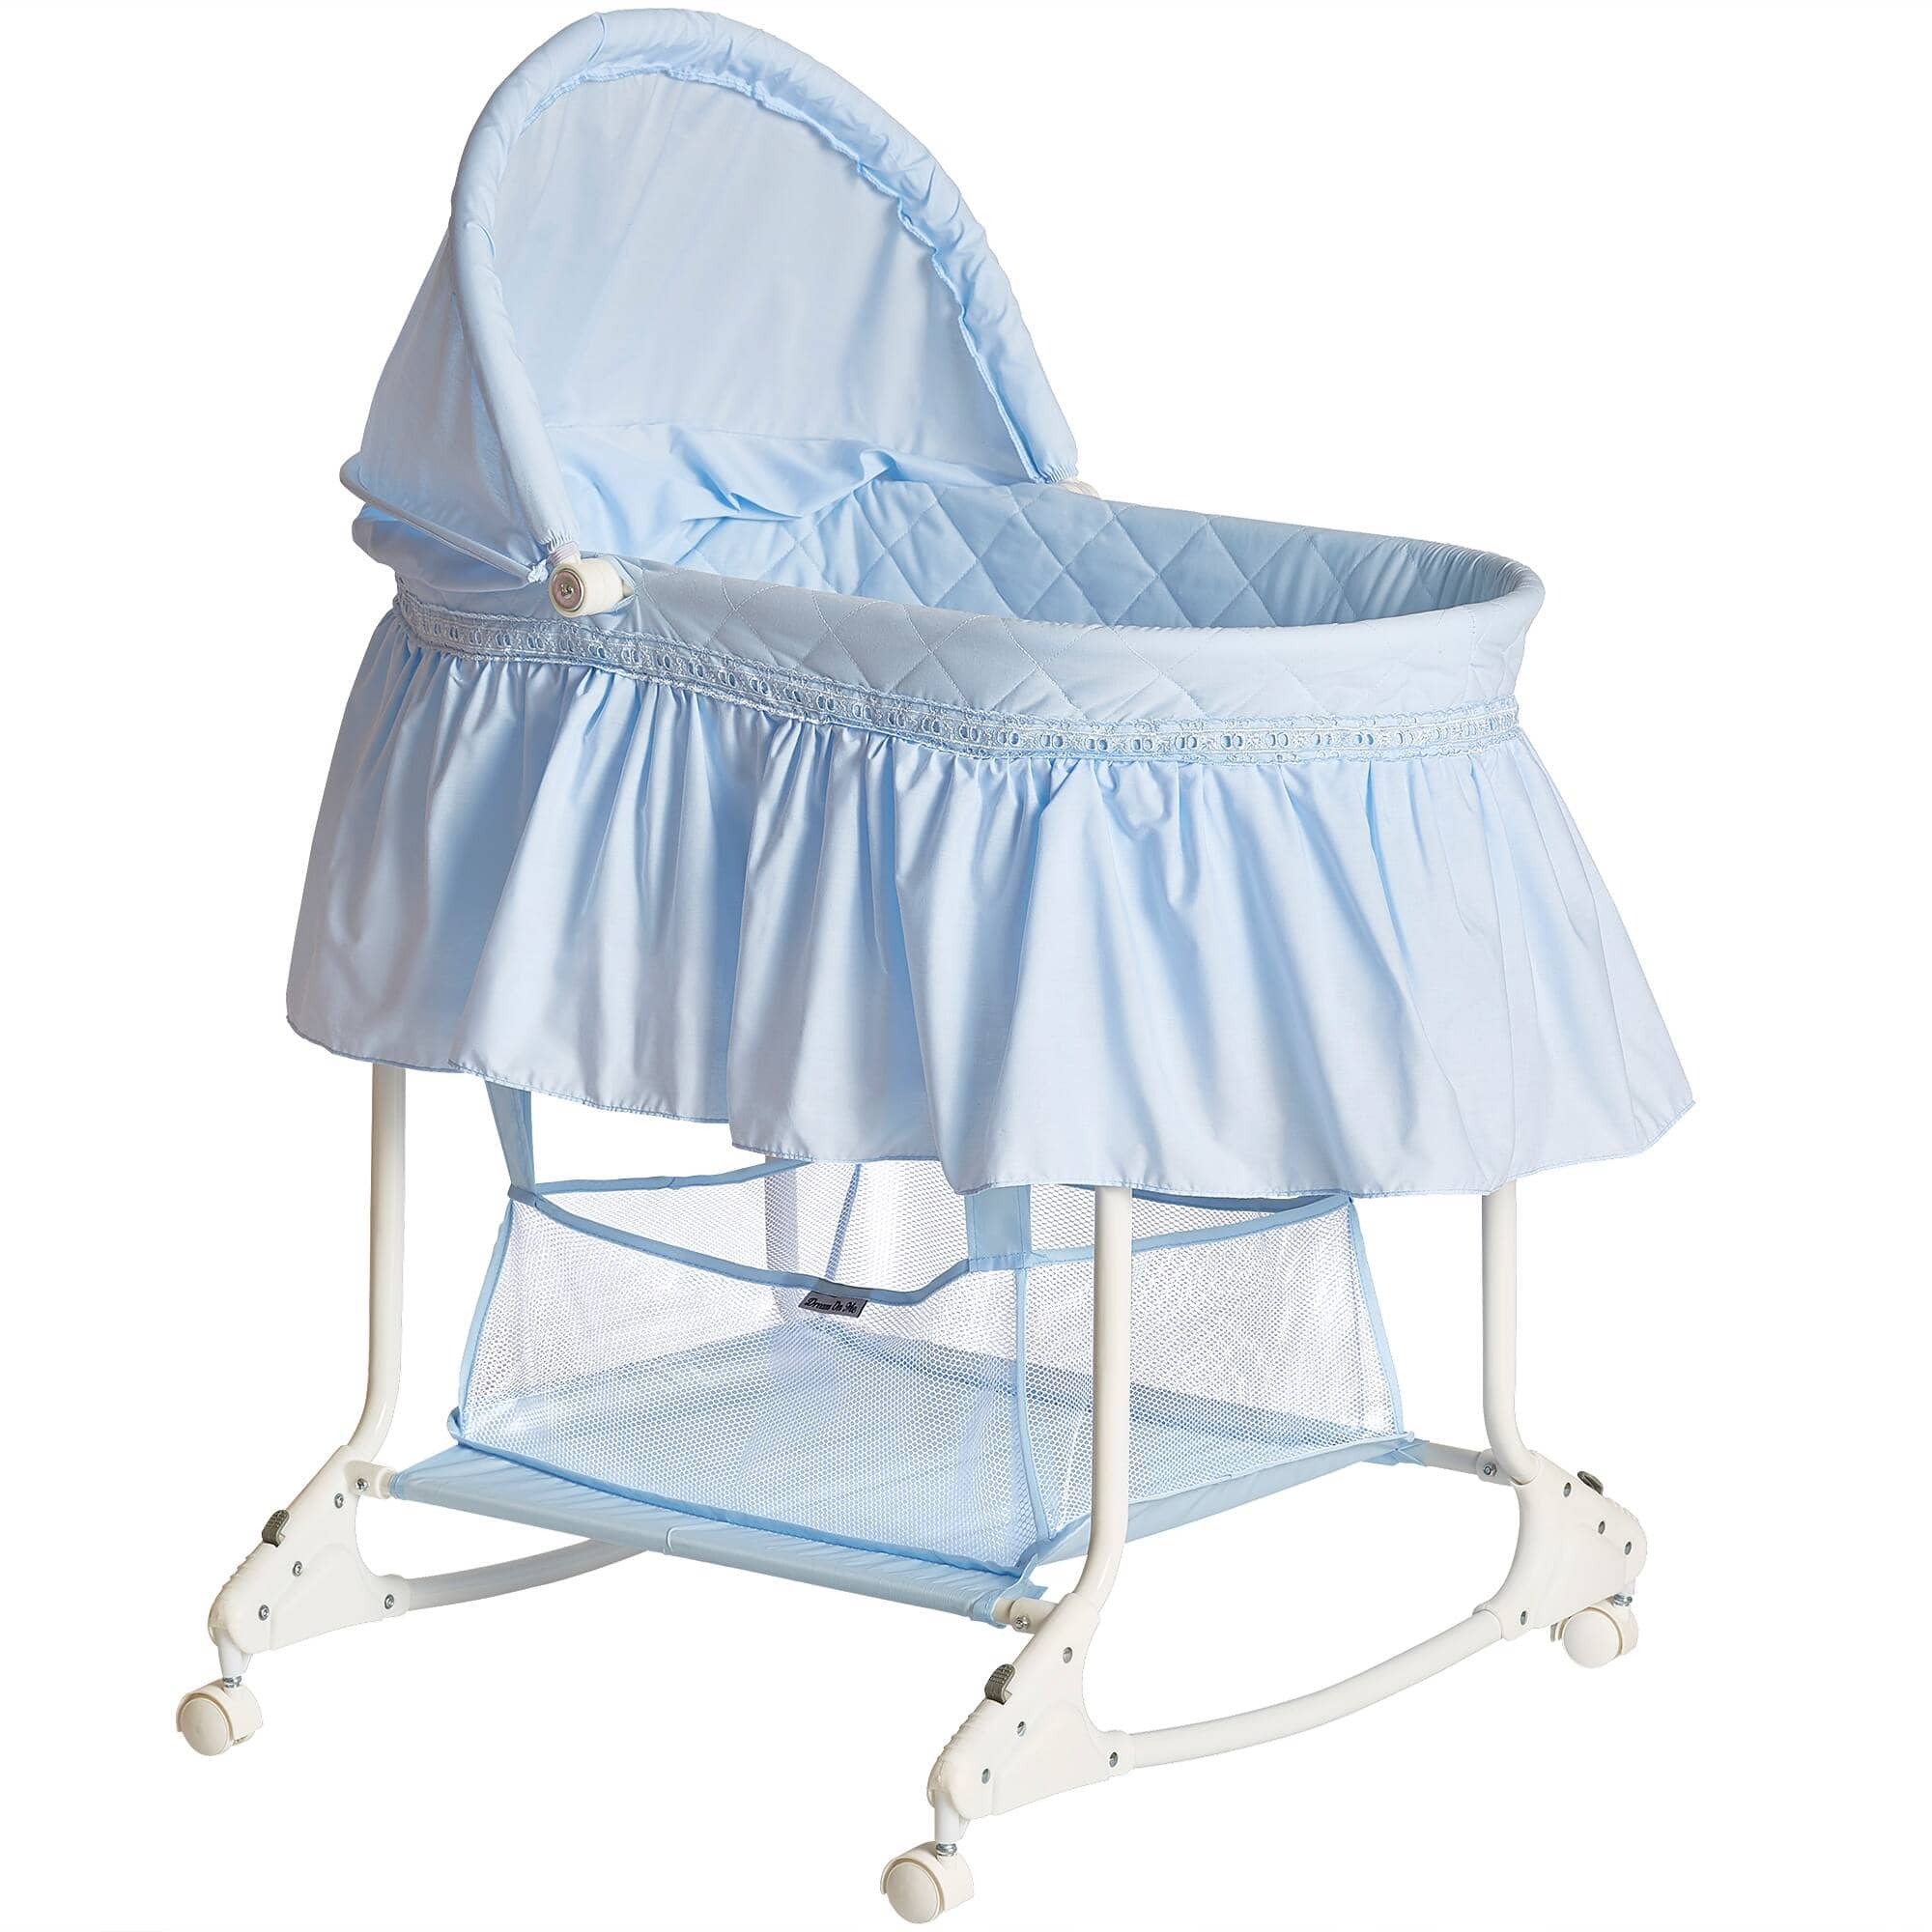 Dream On Me Willow Bassinet $35.86 + Free Shipping (blue or pink)